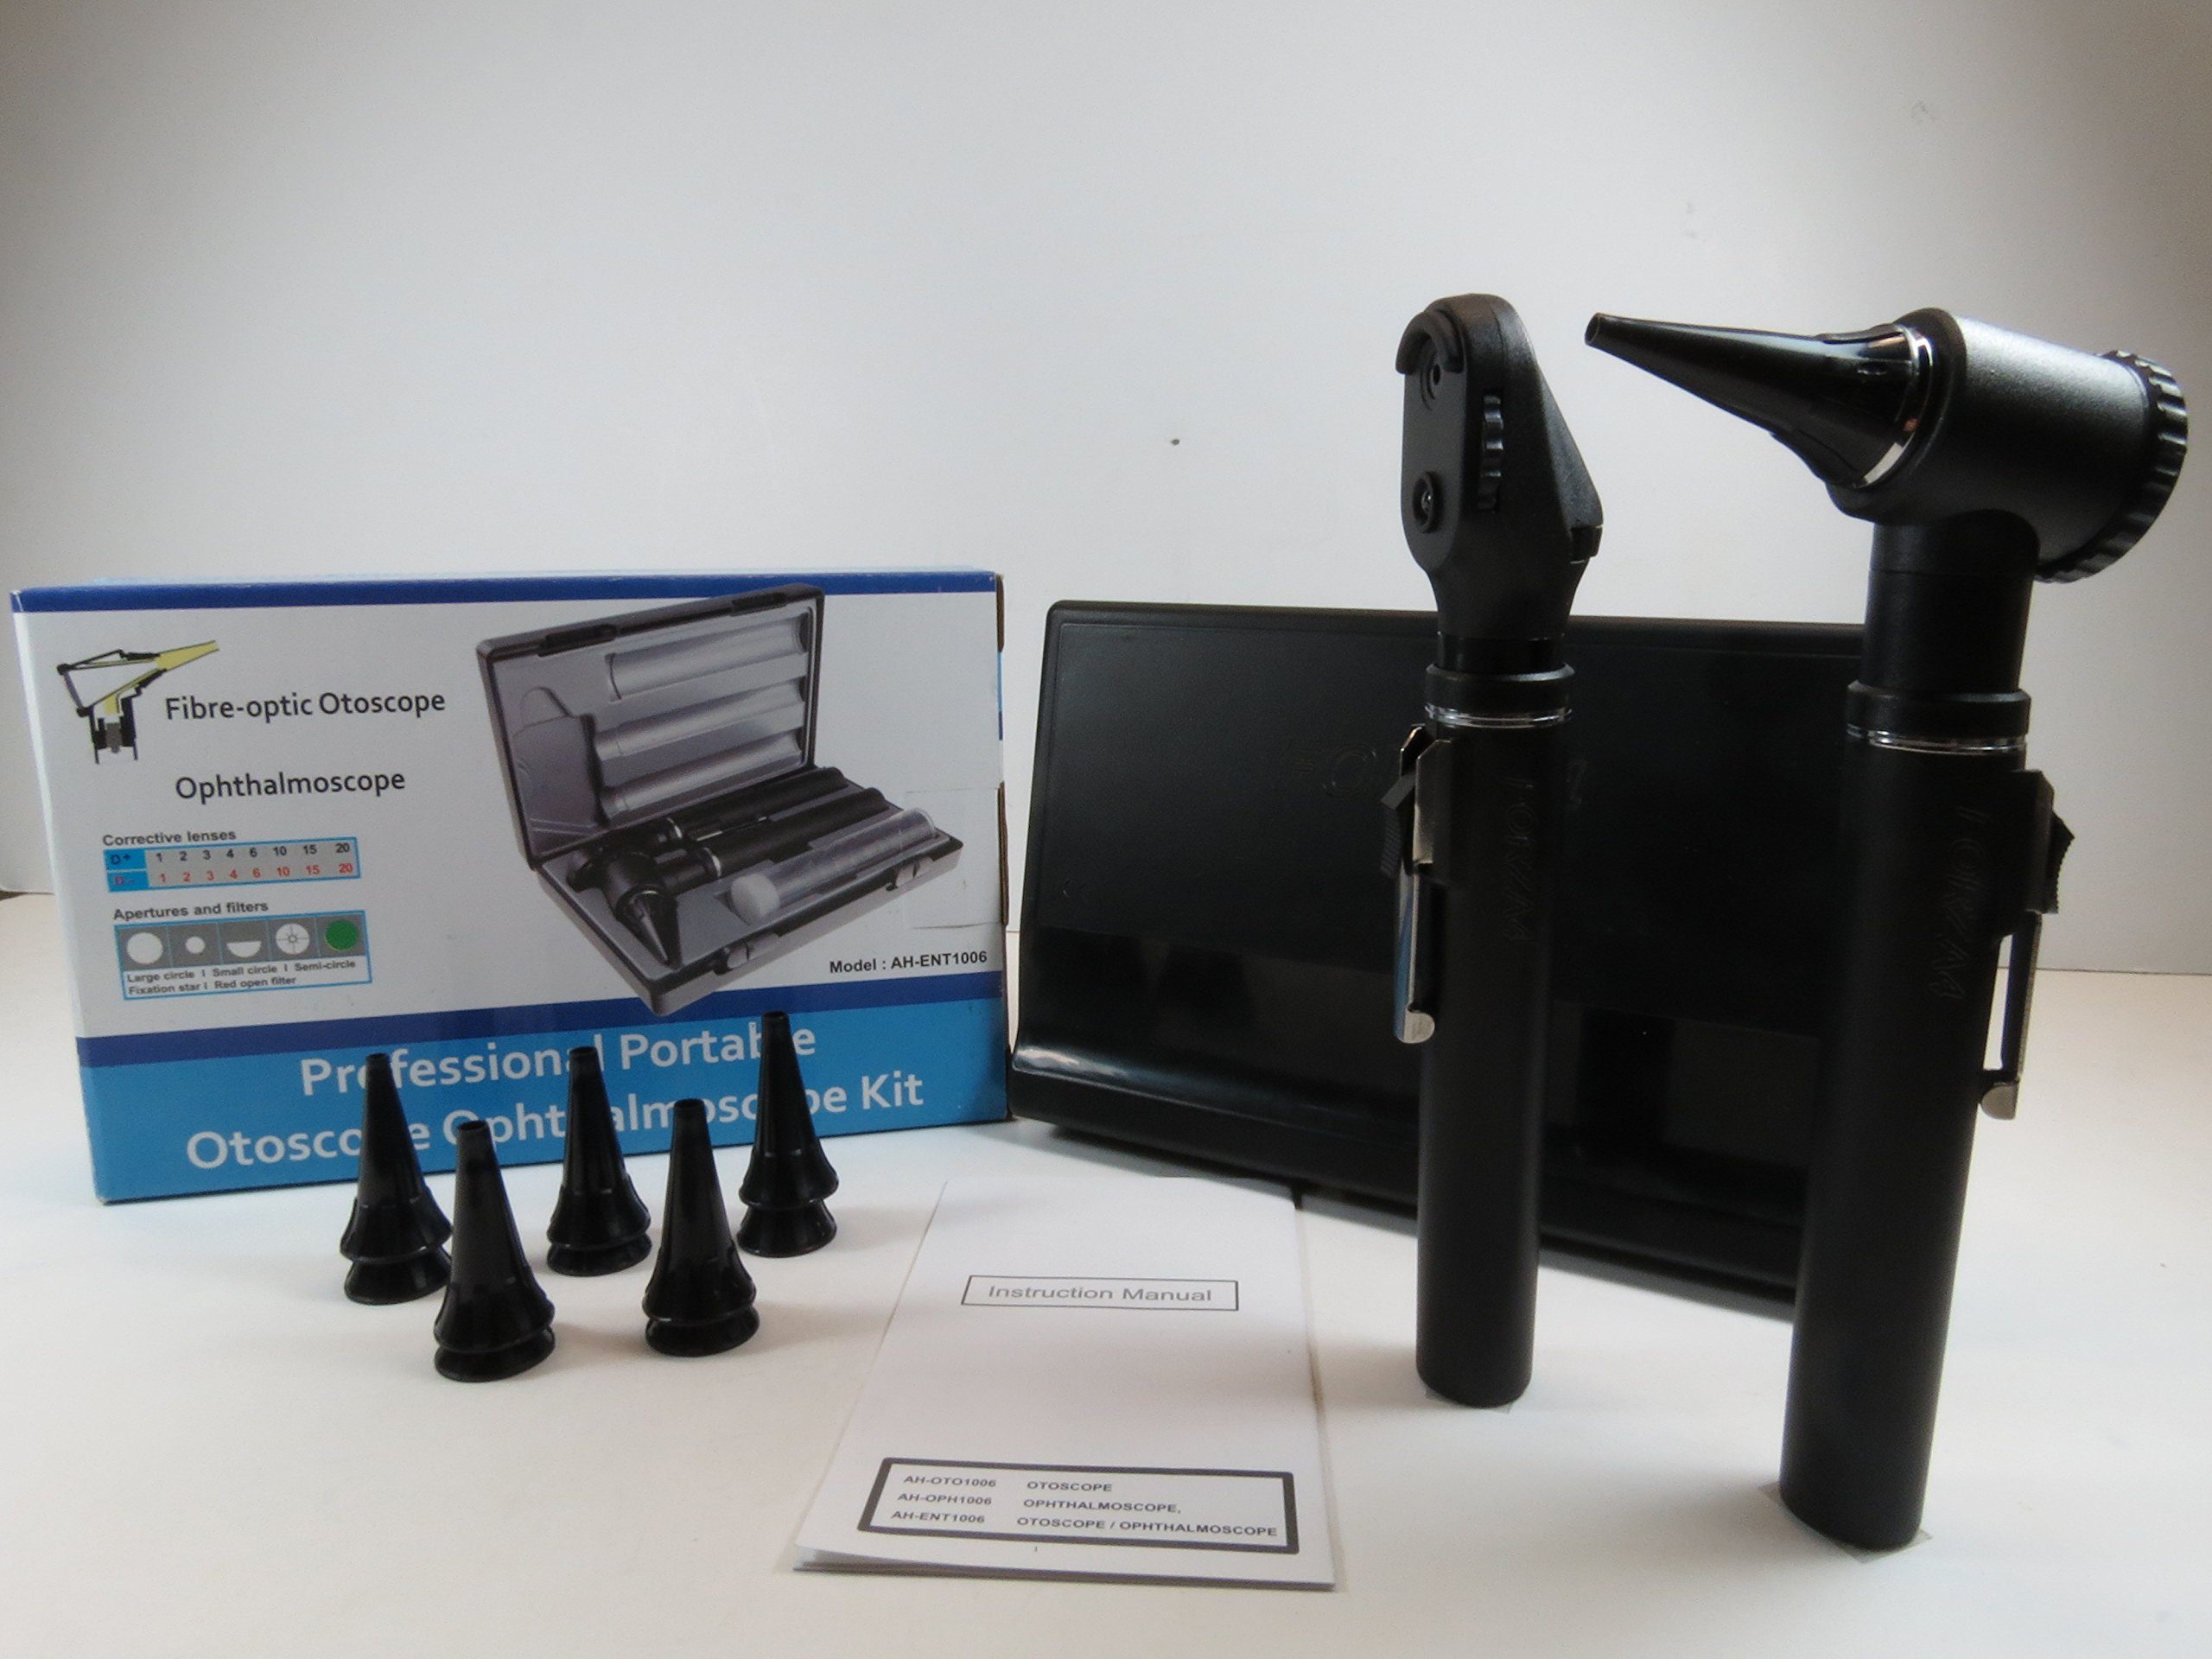 Veterinary Diagnostic Professional Fiber Optic Ophtalmoscope Otoscope Kit